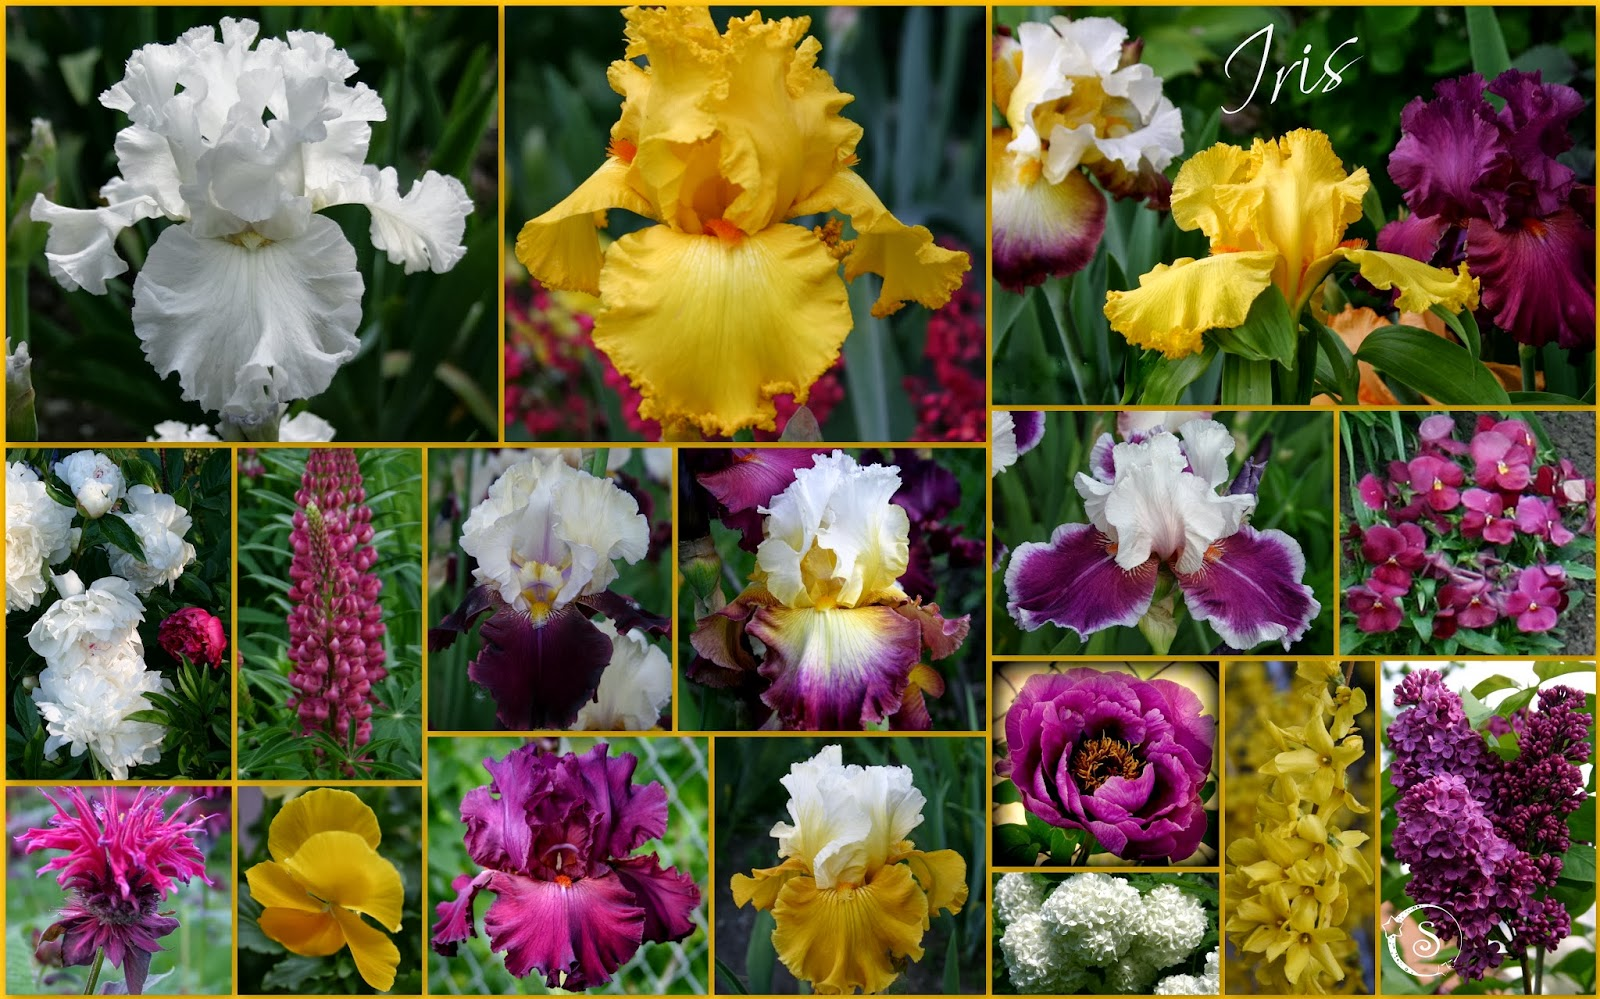 World of irises talking irises tall bearded iris and companion plants ringo vizier and salzburg echo are complimented in this bed with peonies lupine pansies monarda and the last blooms of forsythia izmirmasajfo